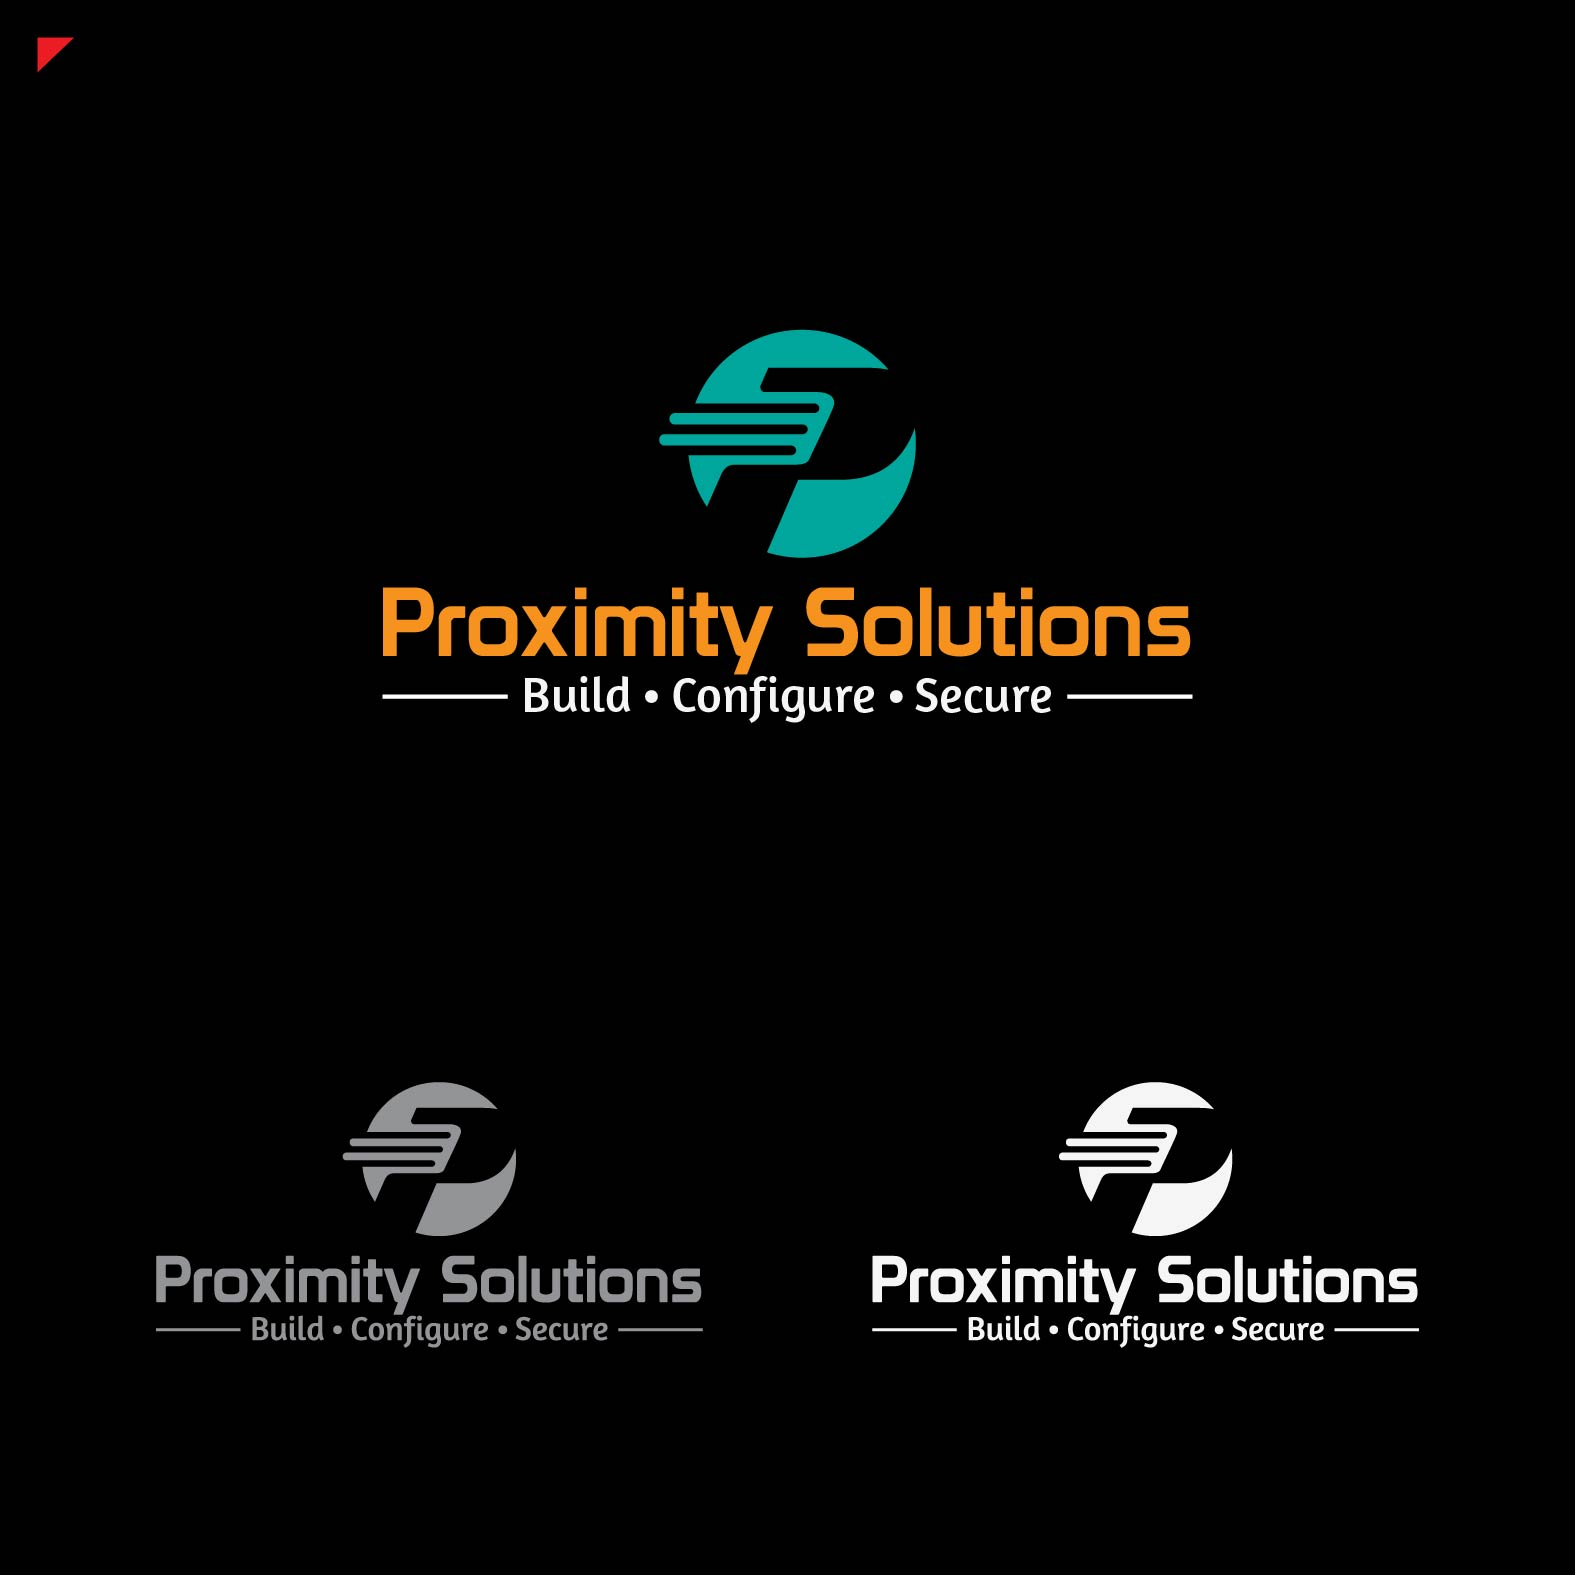 Logo Design by lagalag - Entry No. 51 in the Logo Design Contest New Logo Design for Proximity Solutions.